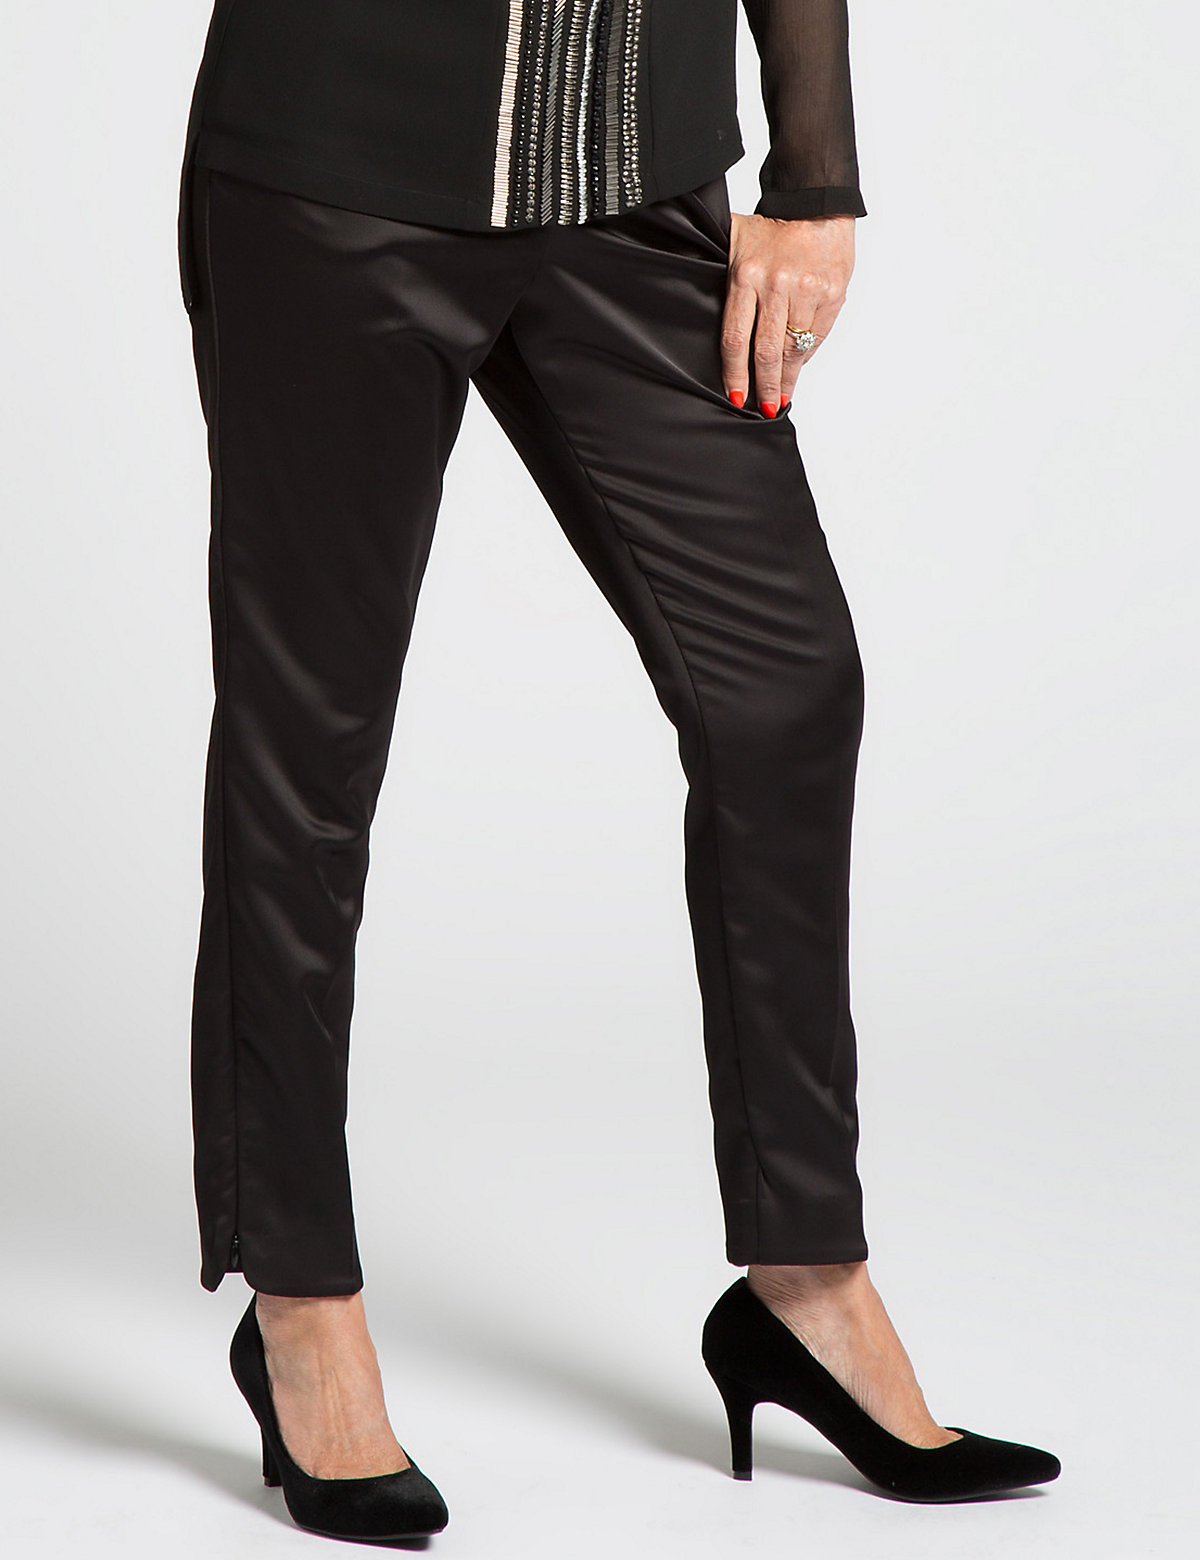 Designed by Twiggy for Classic Straight Leg Trousers